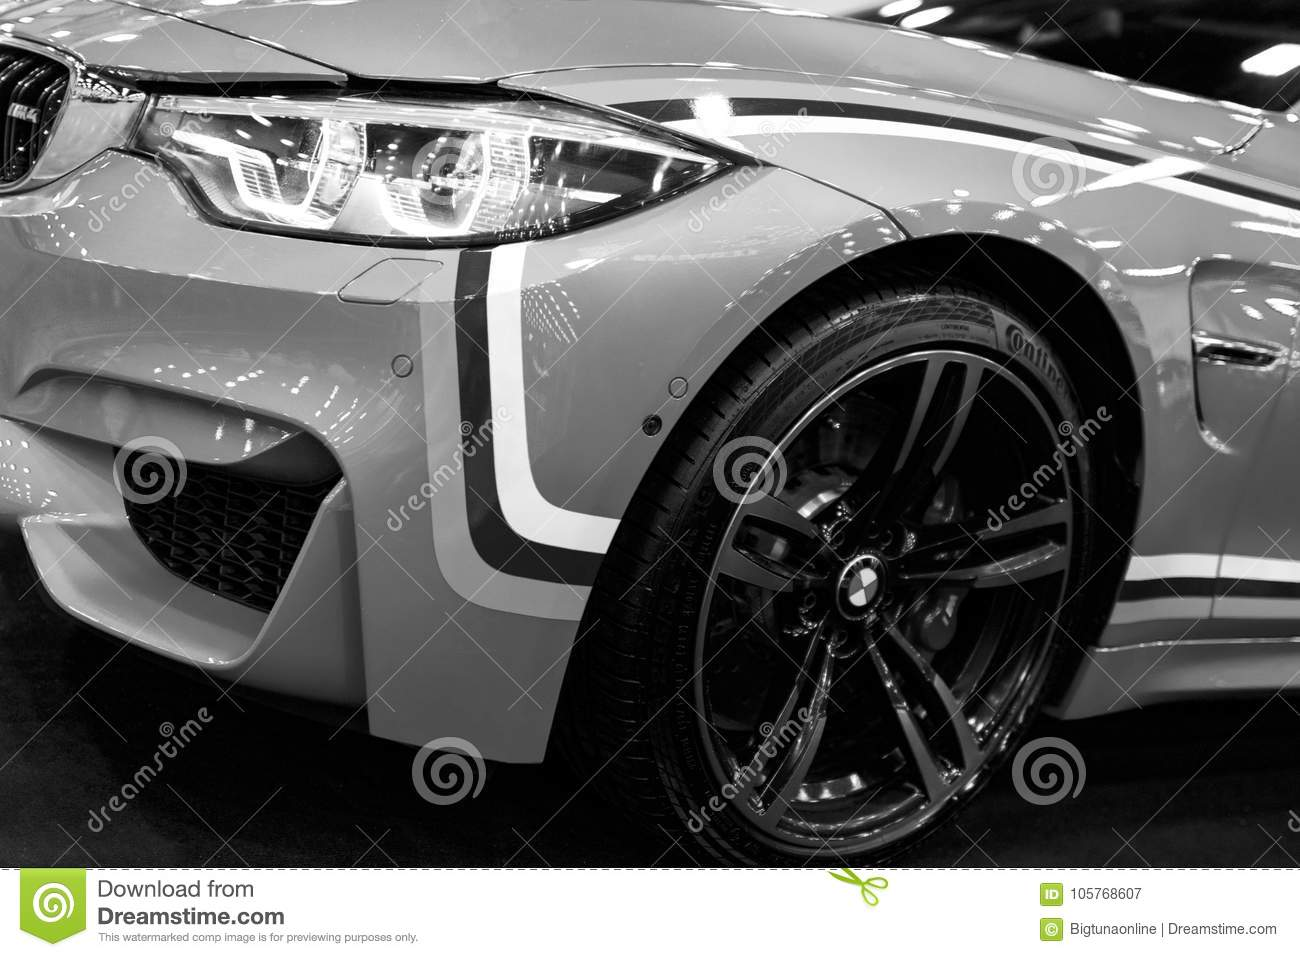 Sankt Petersburg Russia July 21 2017 Front View Of A BMW M4 Sports Car M Performance Edition Exterior Details Black And White